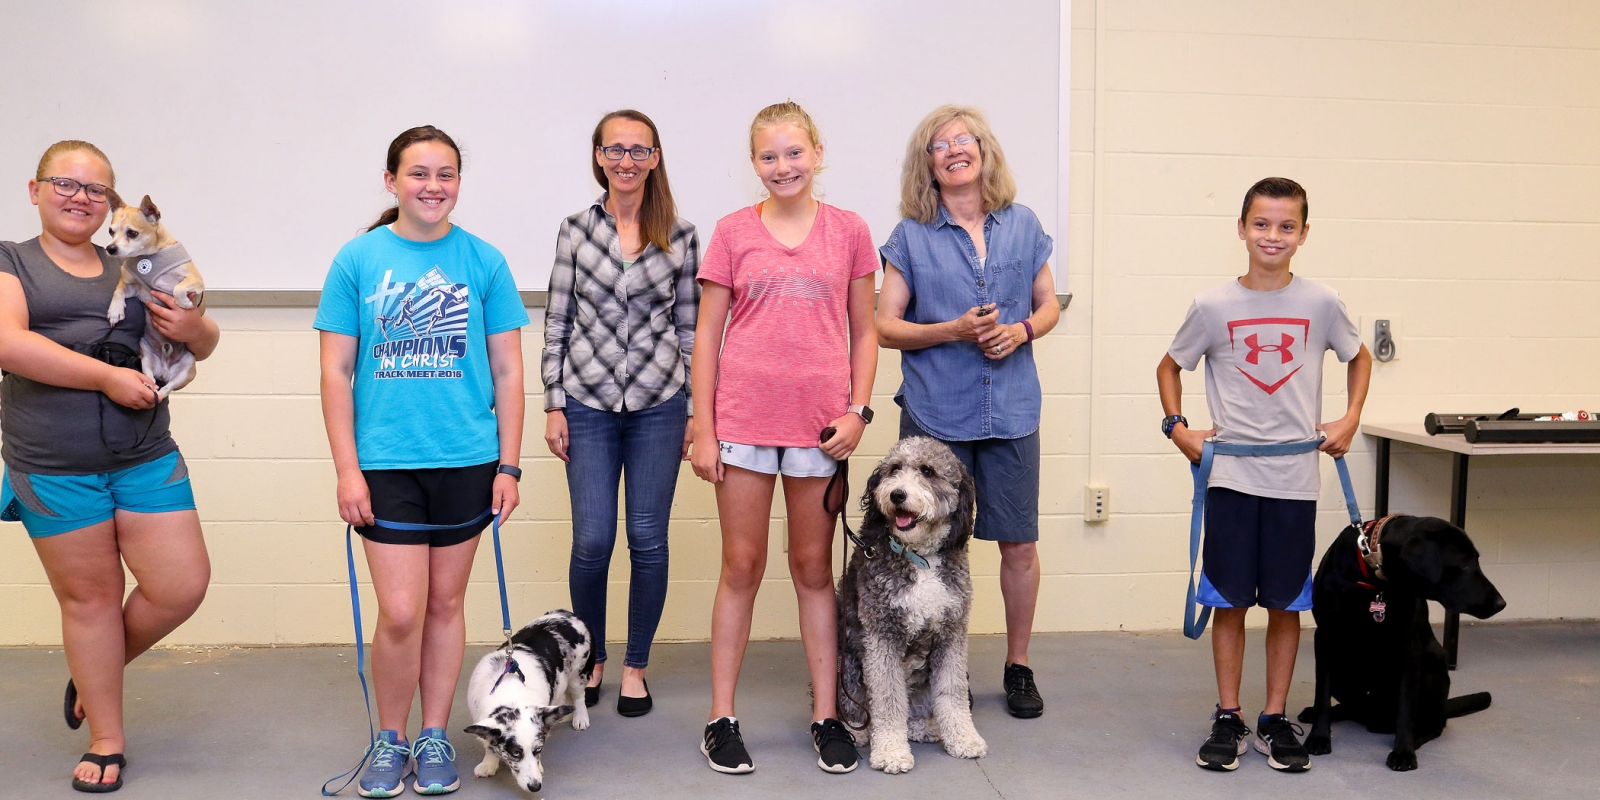 Group o 4-H kids and two dog trainers pose for a photo